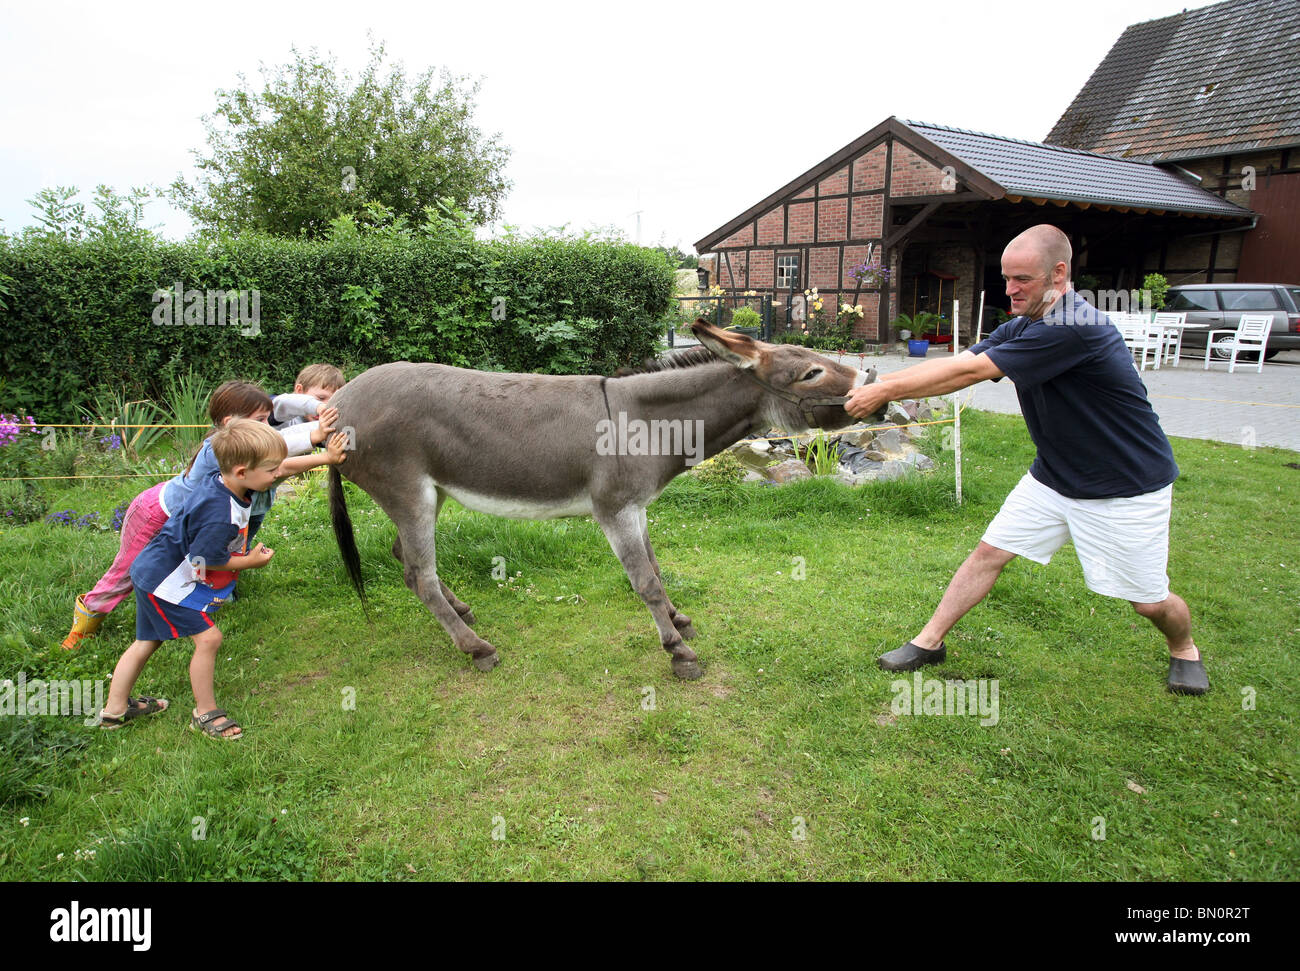 a-man-with-kids-try-to-make-a-stubborn-donkey-move-BN0R2T.jpg